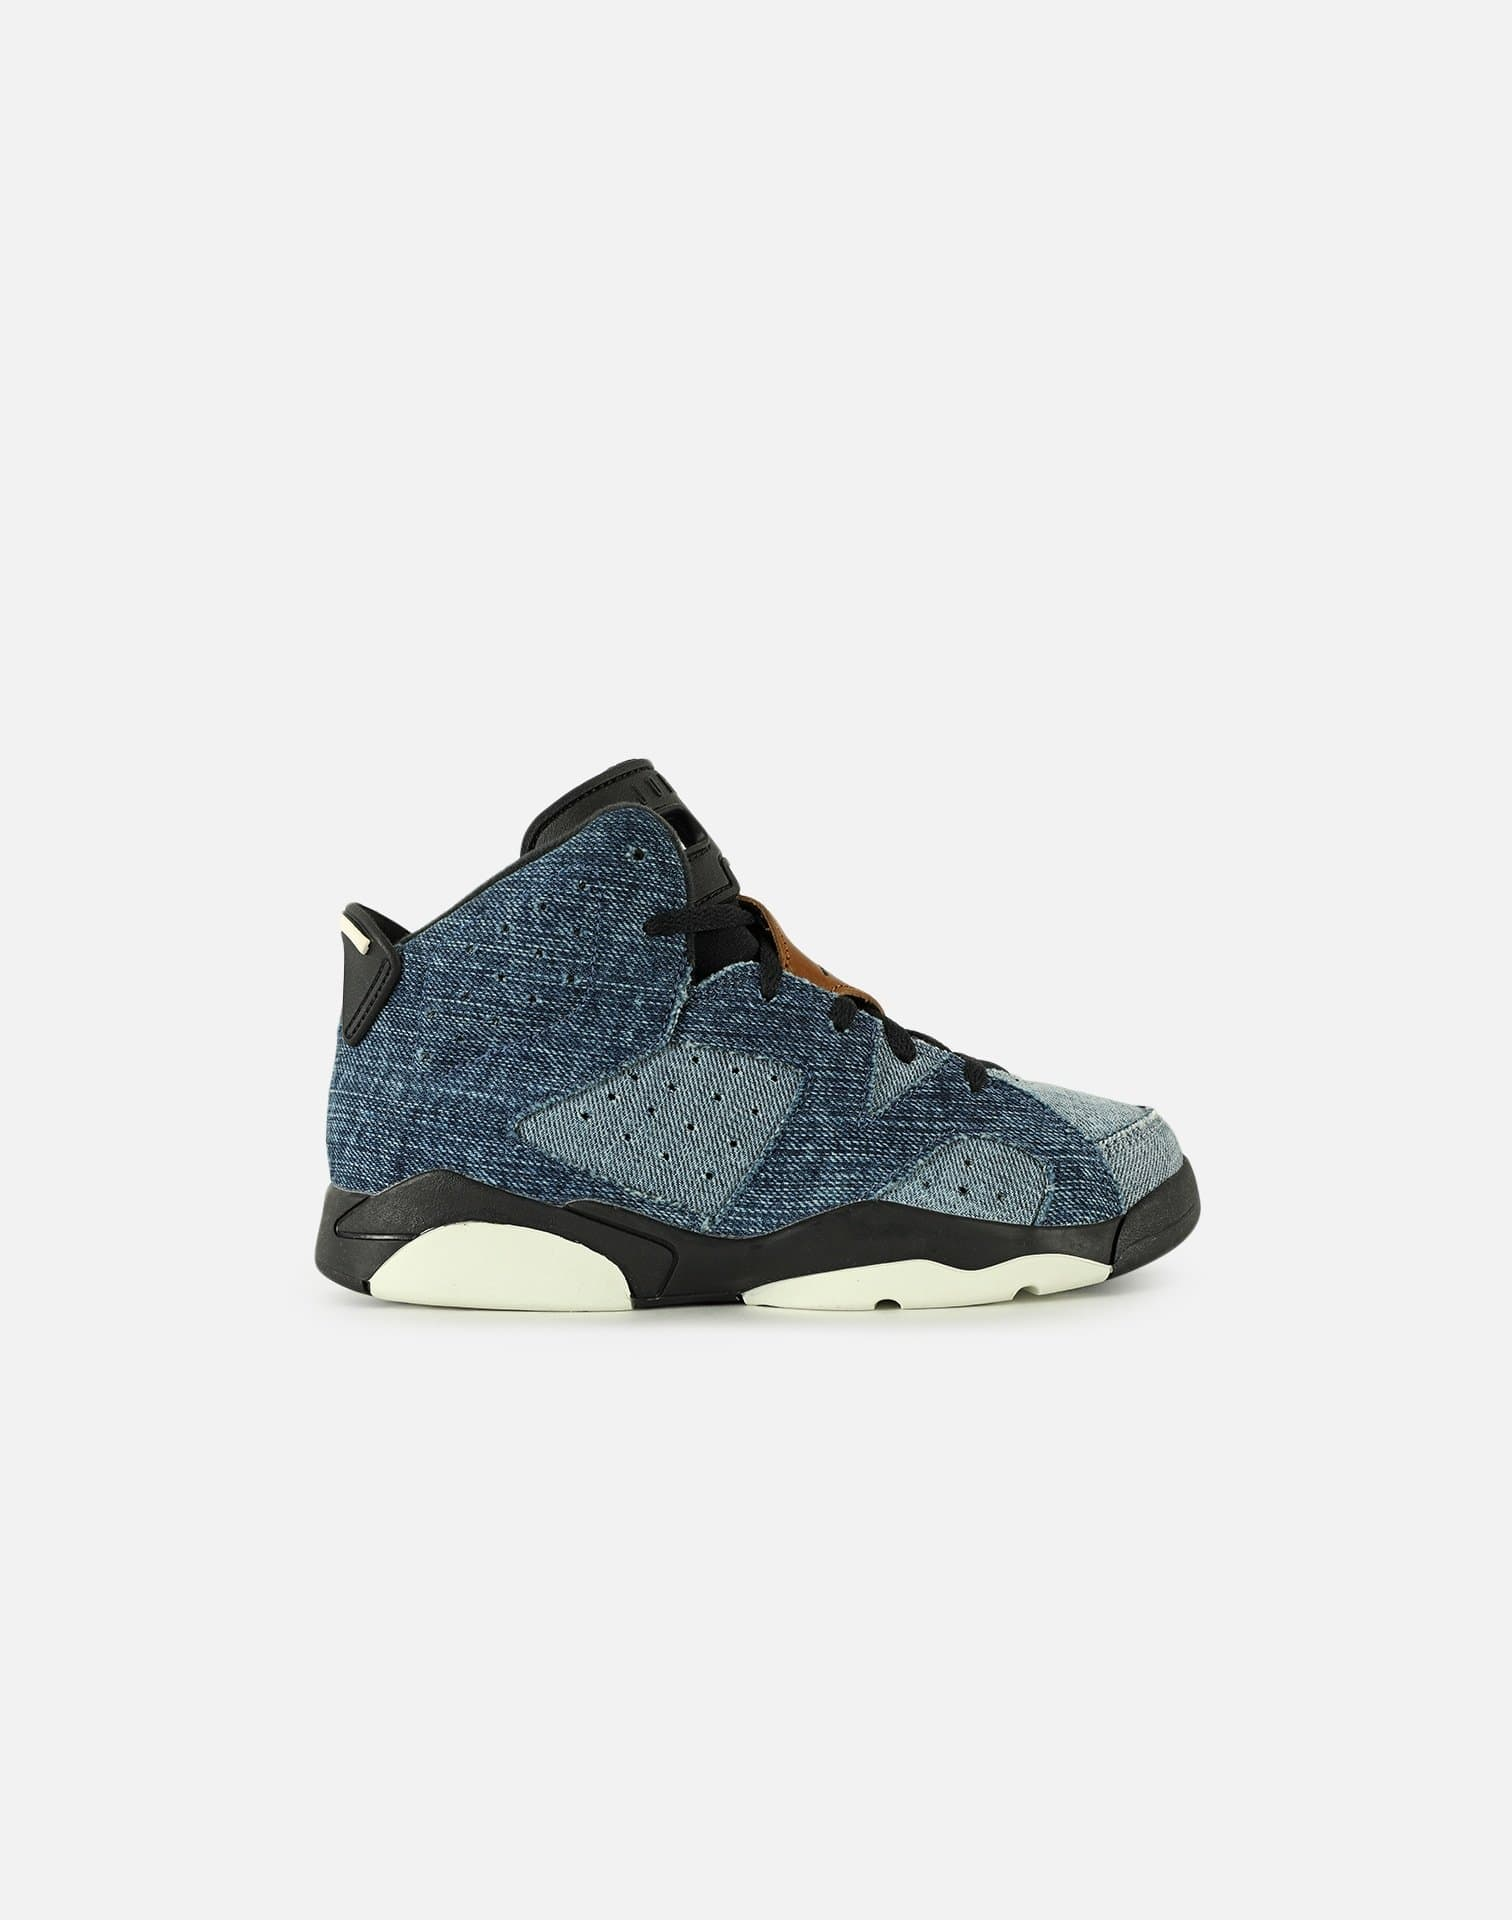 Jordan AIR JORDAN RETRO 6 'DENIM' PRE-SCHOOL